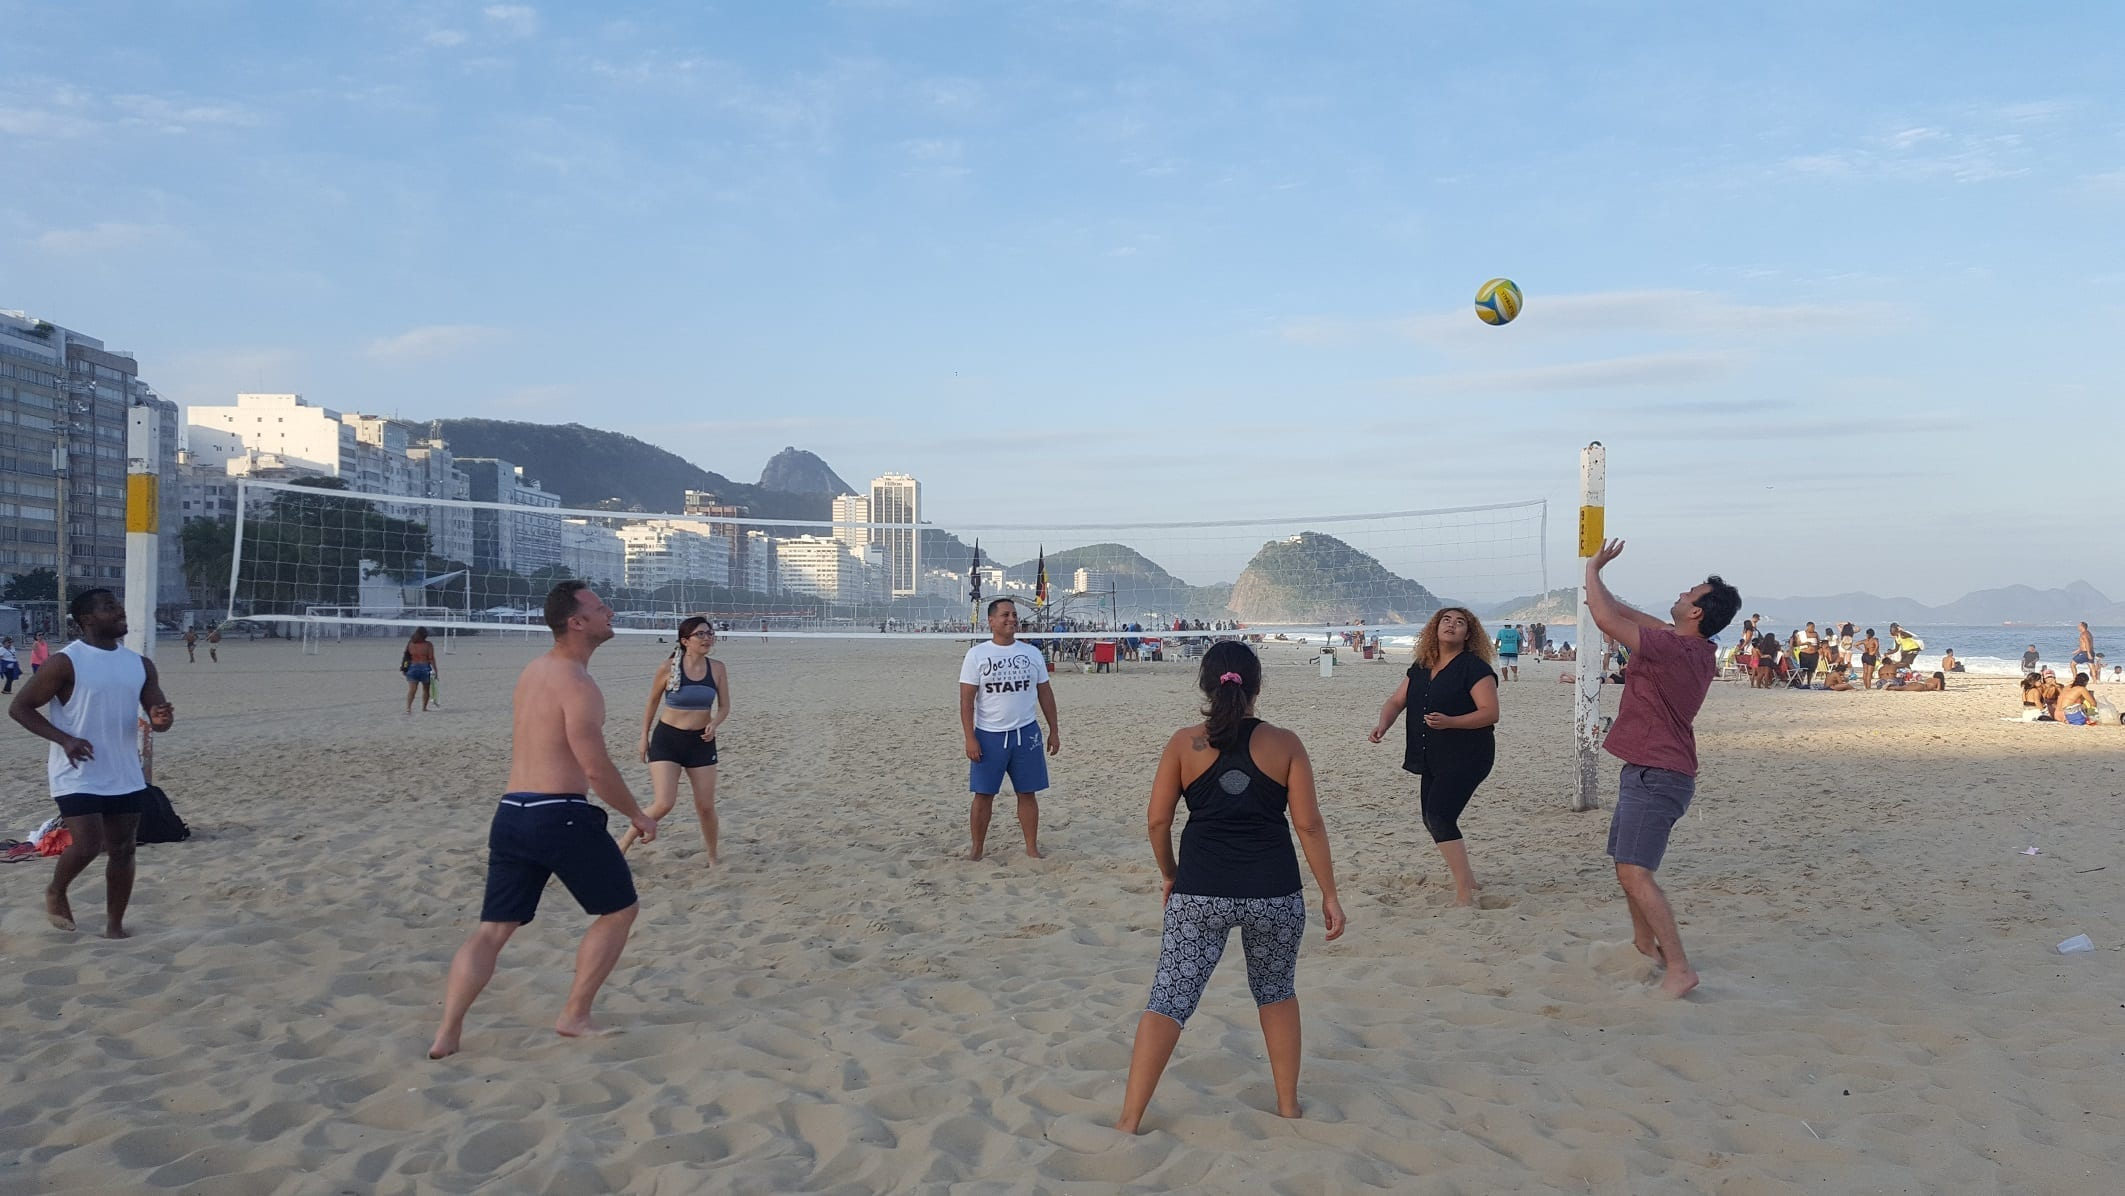 Warming up with some basic beach volley steps at Copacabana beach.